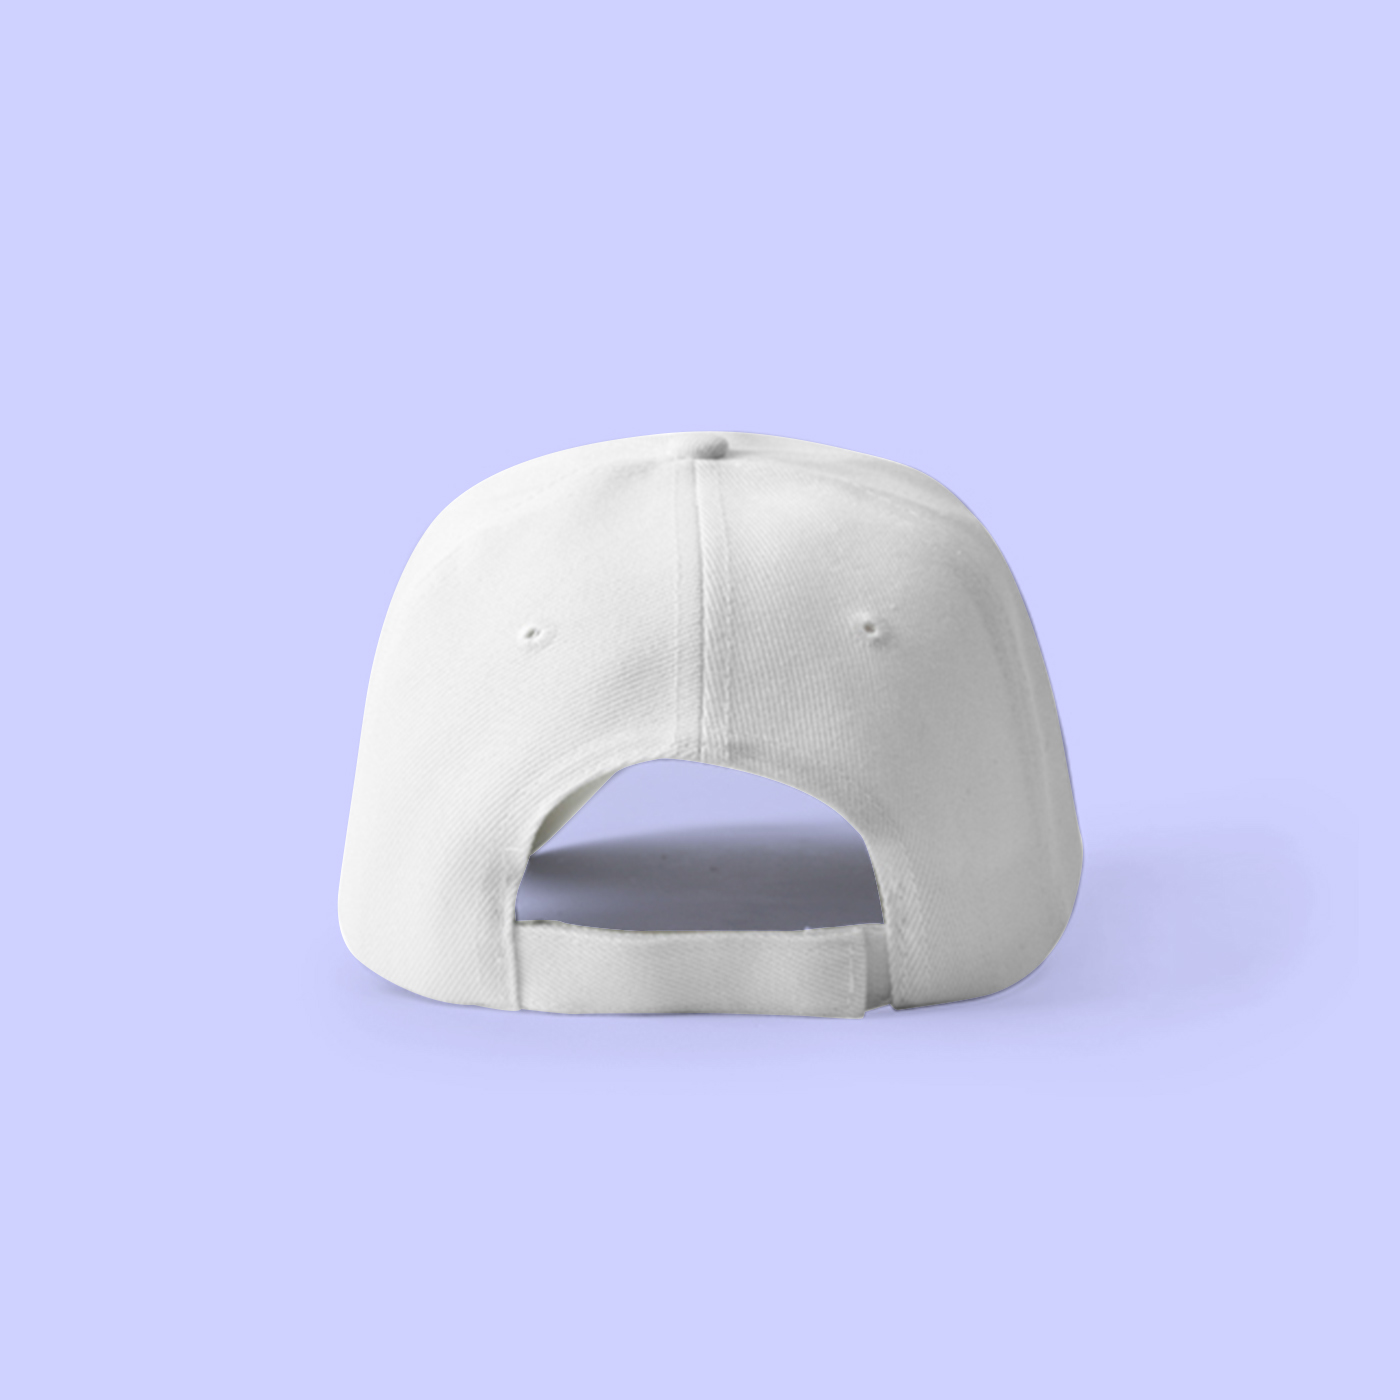 a754648c3f0 ... VAPORWAVE I HAVE MORE CAPS THAN REAL FRIENDS BASEBALL CAP IN WHITE -  Thumbnail 2